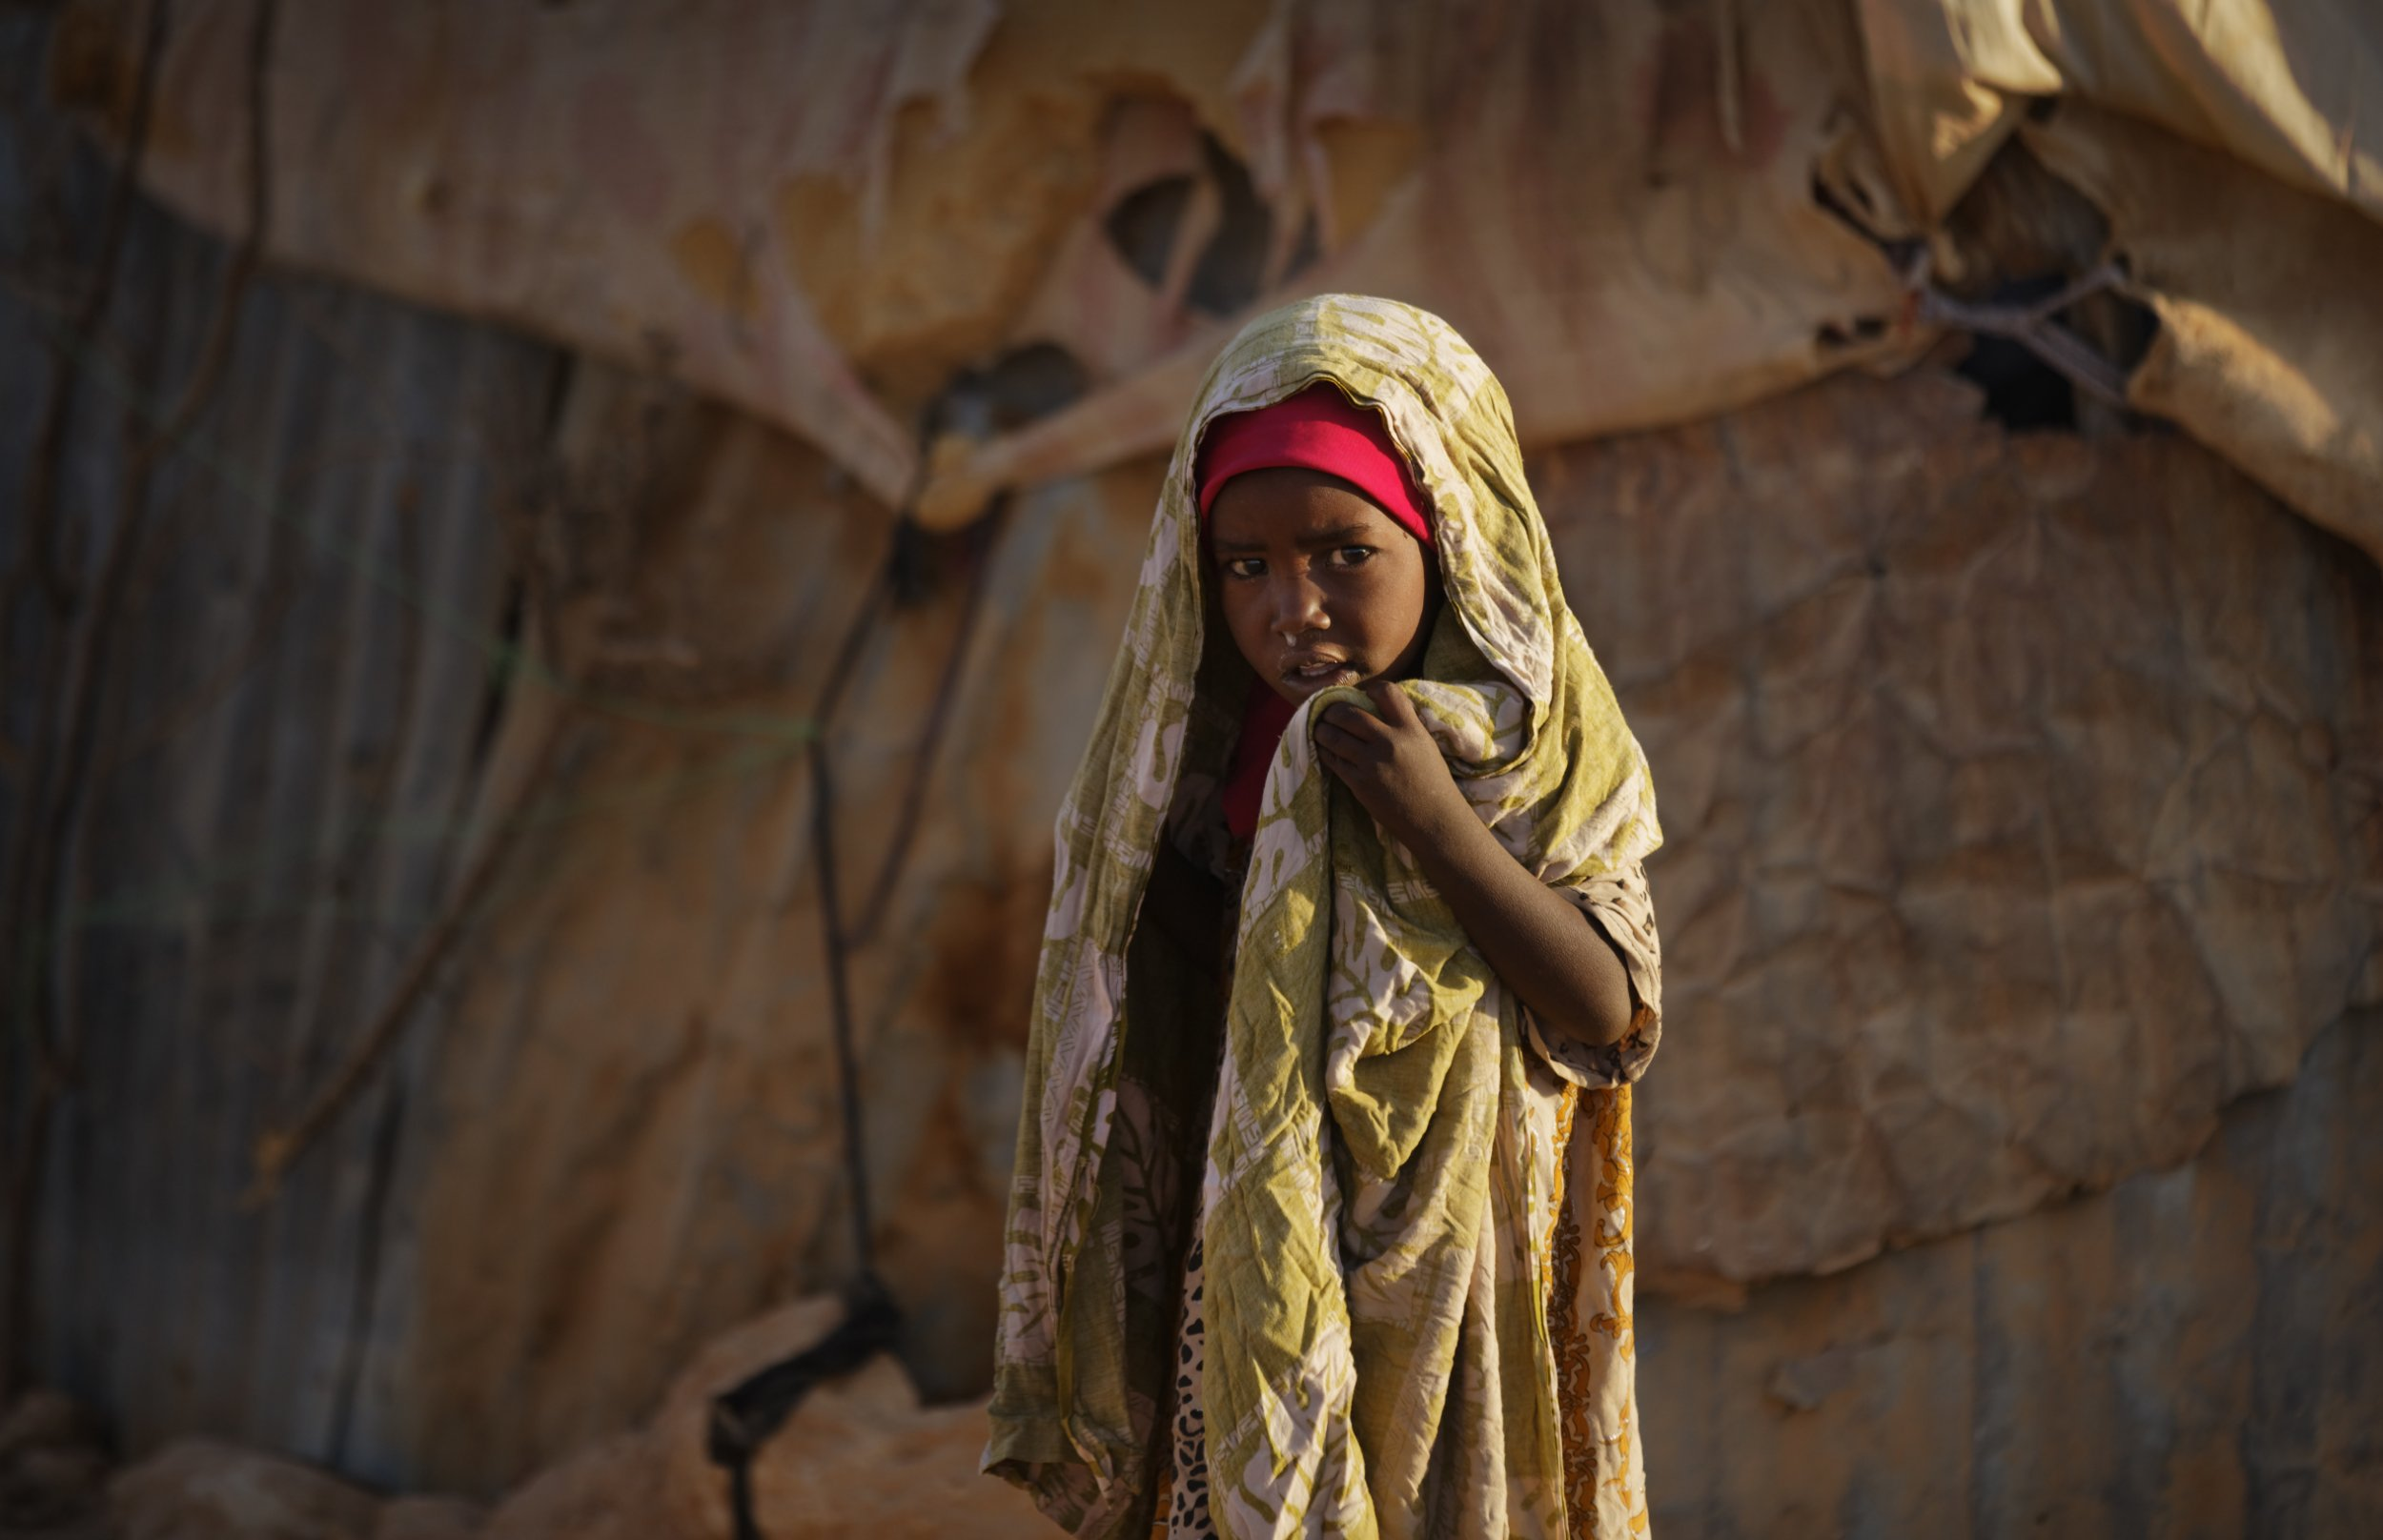 A young Somali girl stands outside her makeshift hut at a camp of people displaced from their homes elsewhere in the country by the drought, shortly after dawn in Qardho, Somalia Thursday, March 9, 2017. Somalia's government has declared the drought a national disaster, and the United Nations estimates that 5 million people in this Horn of Africa nation need aid, amid warnings of a full-blown famine. (AP Photo/Ben Curtis)